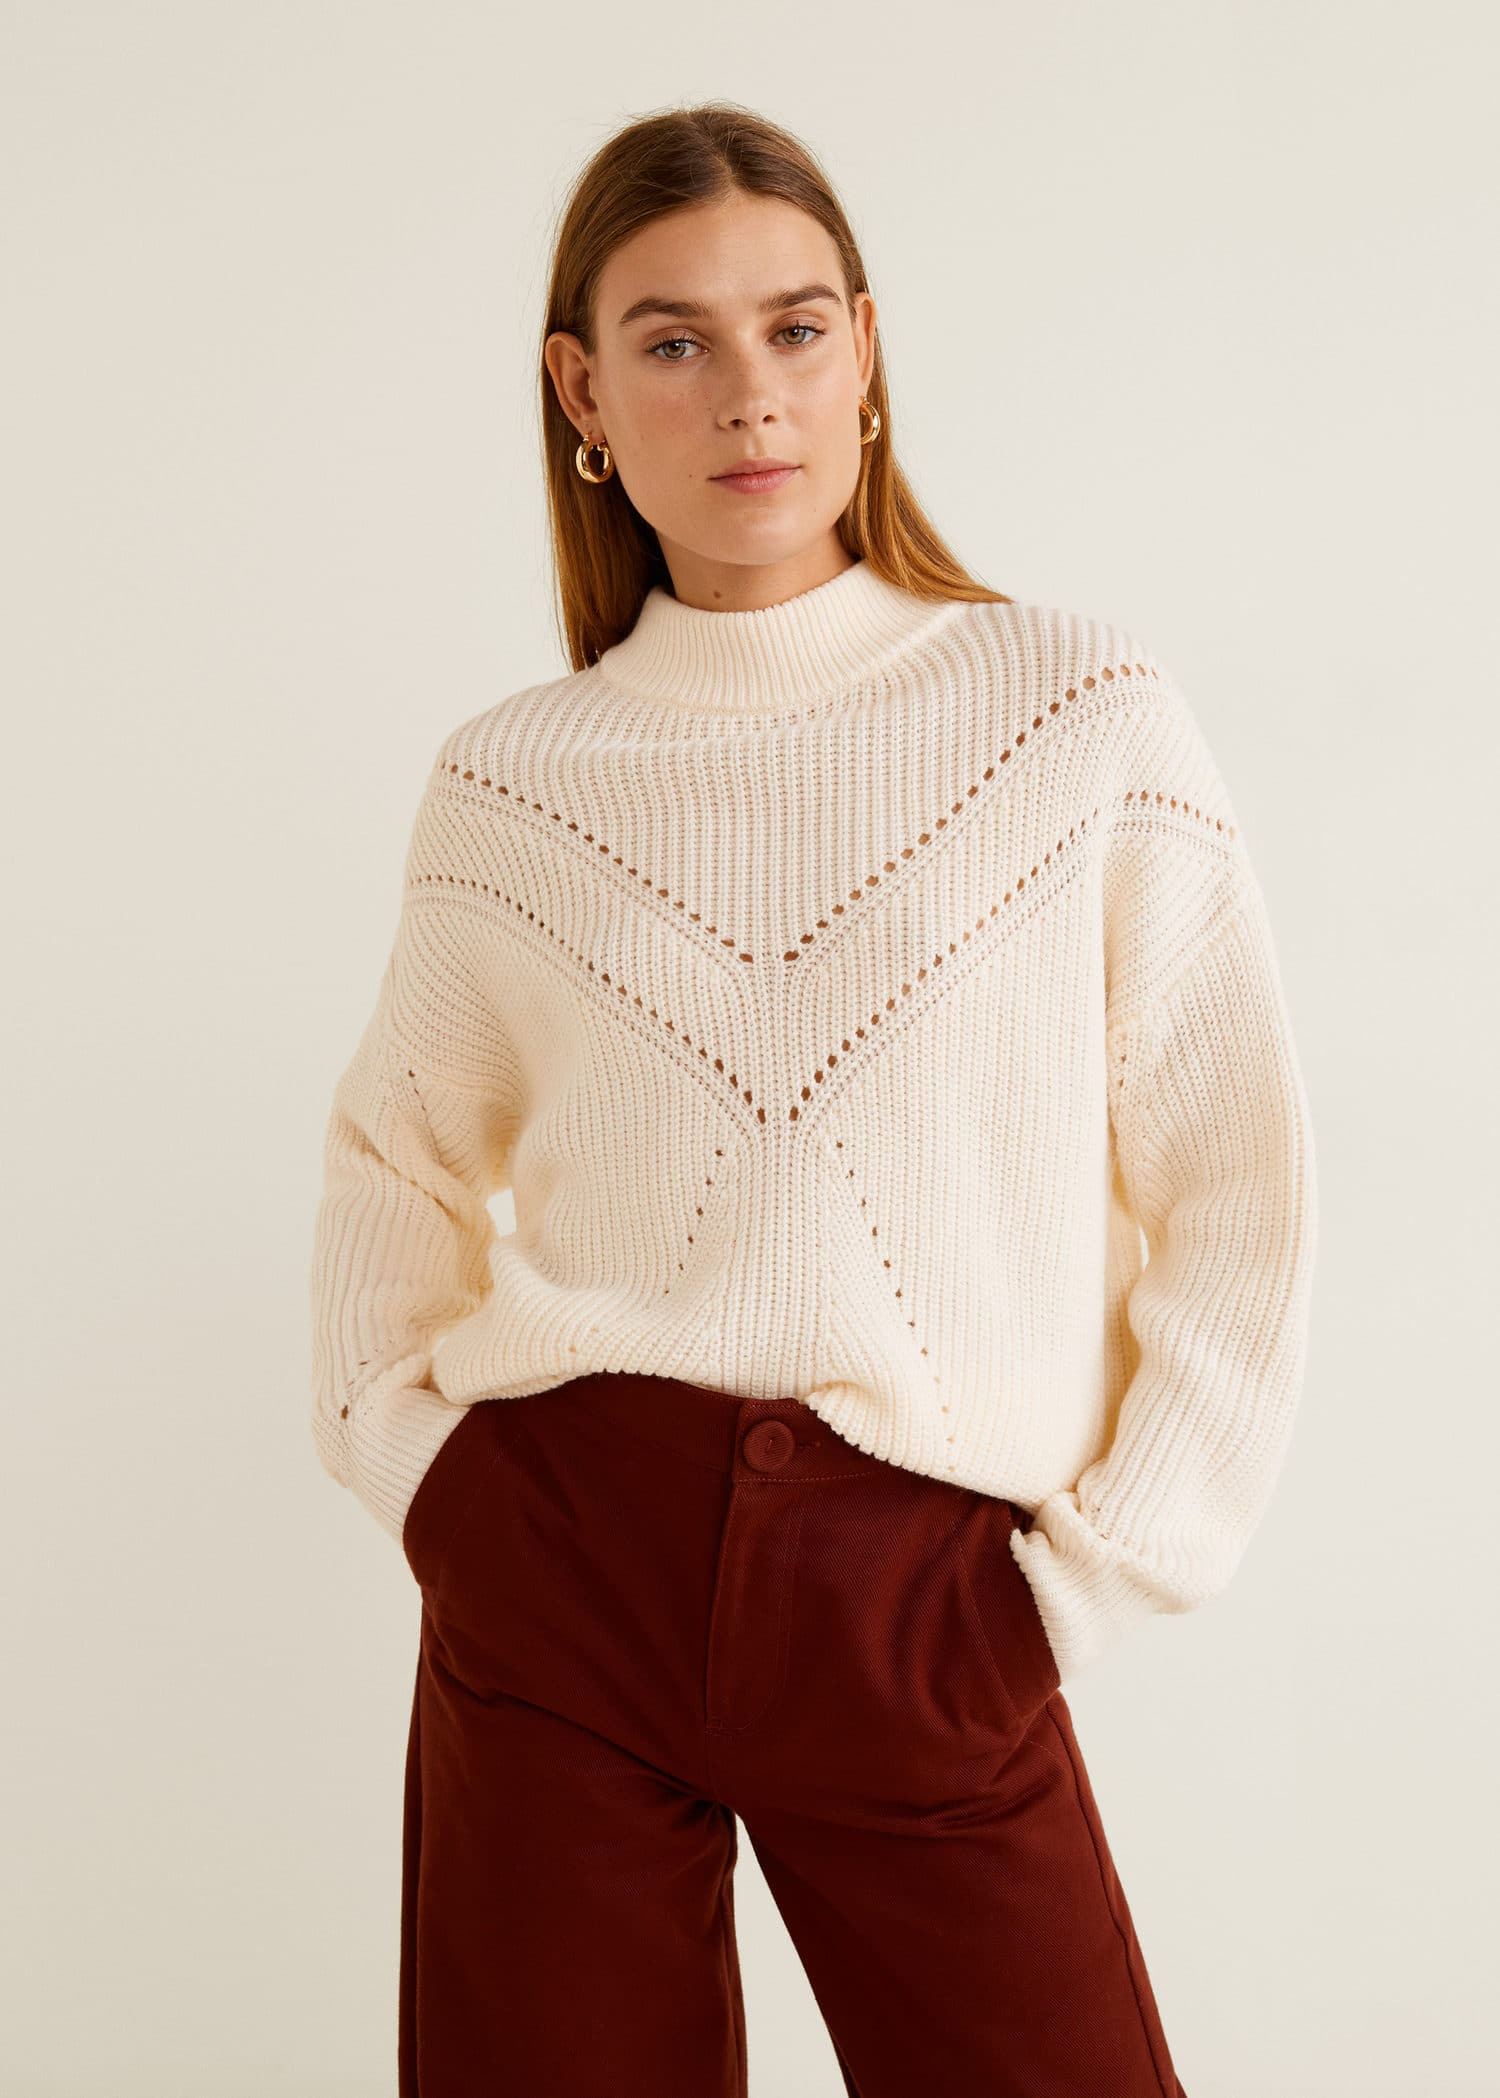 factory authentic crazy price outlet store Contrasting knit sweater - Women   Mango United Kingdom